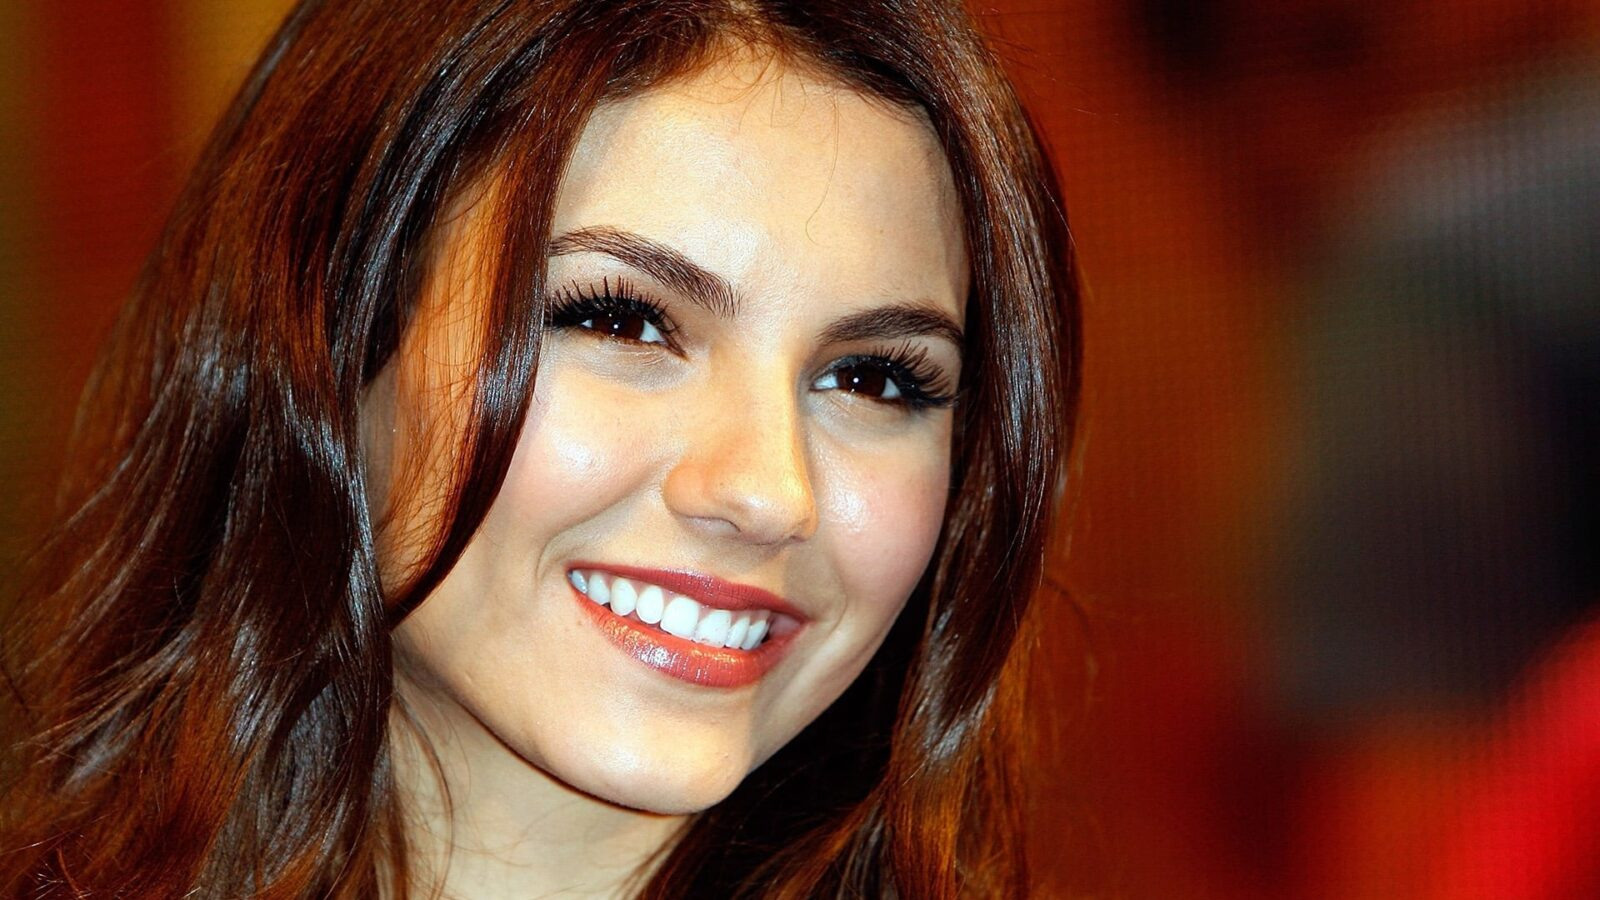 New Iphone Victoria Justice Hd Wallpapers High Quality